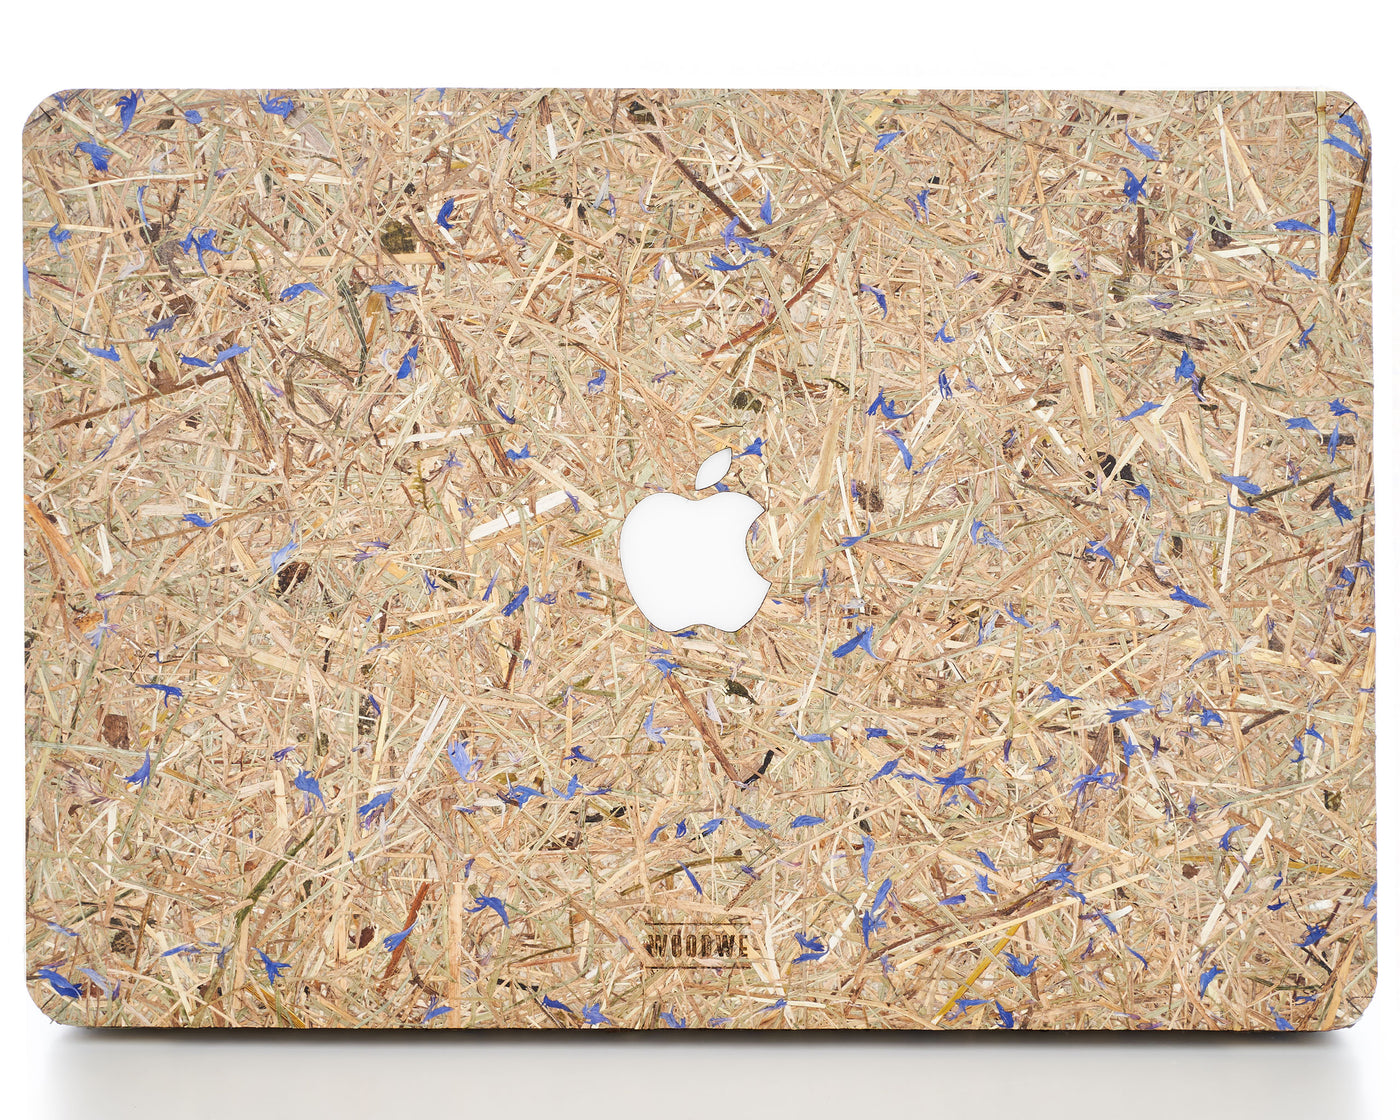 MACBOOK HAY COLLECTION